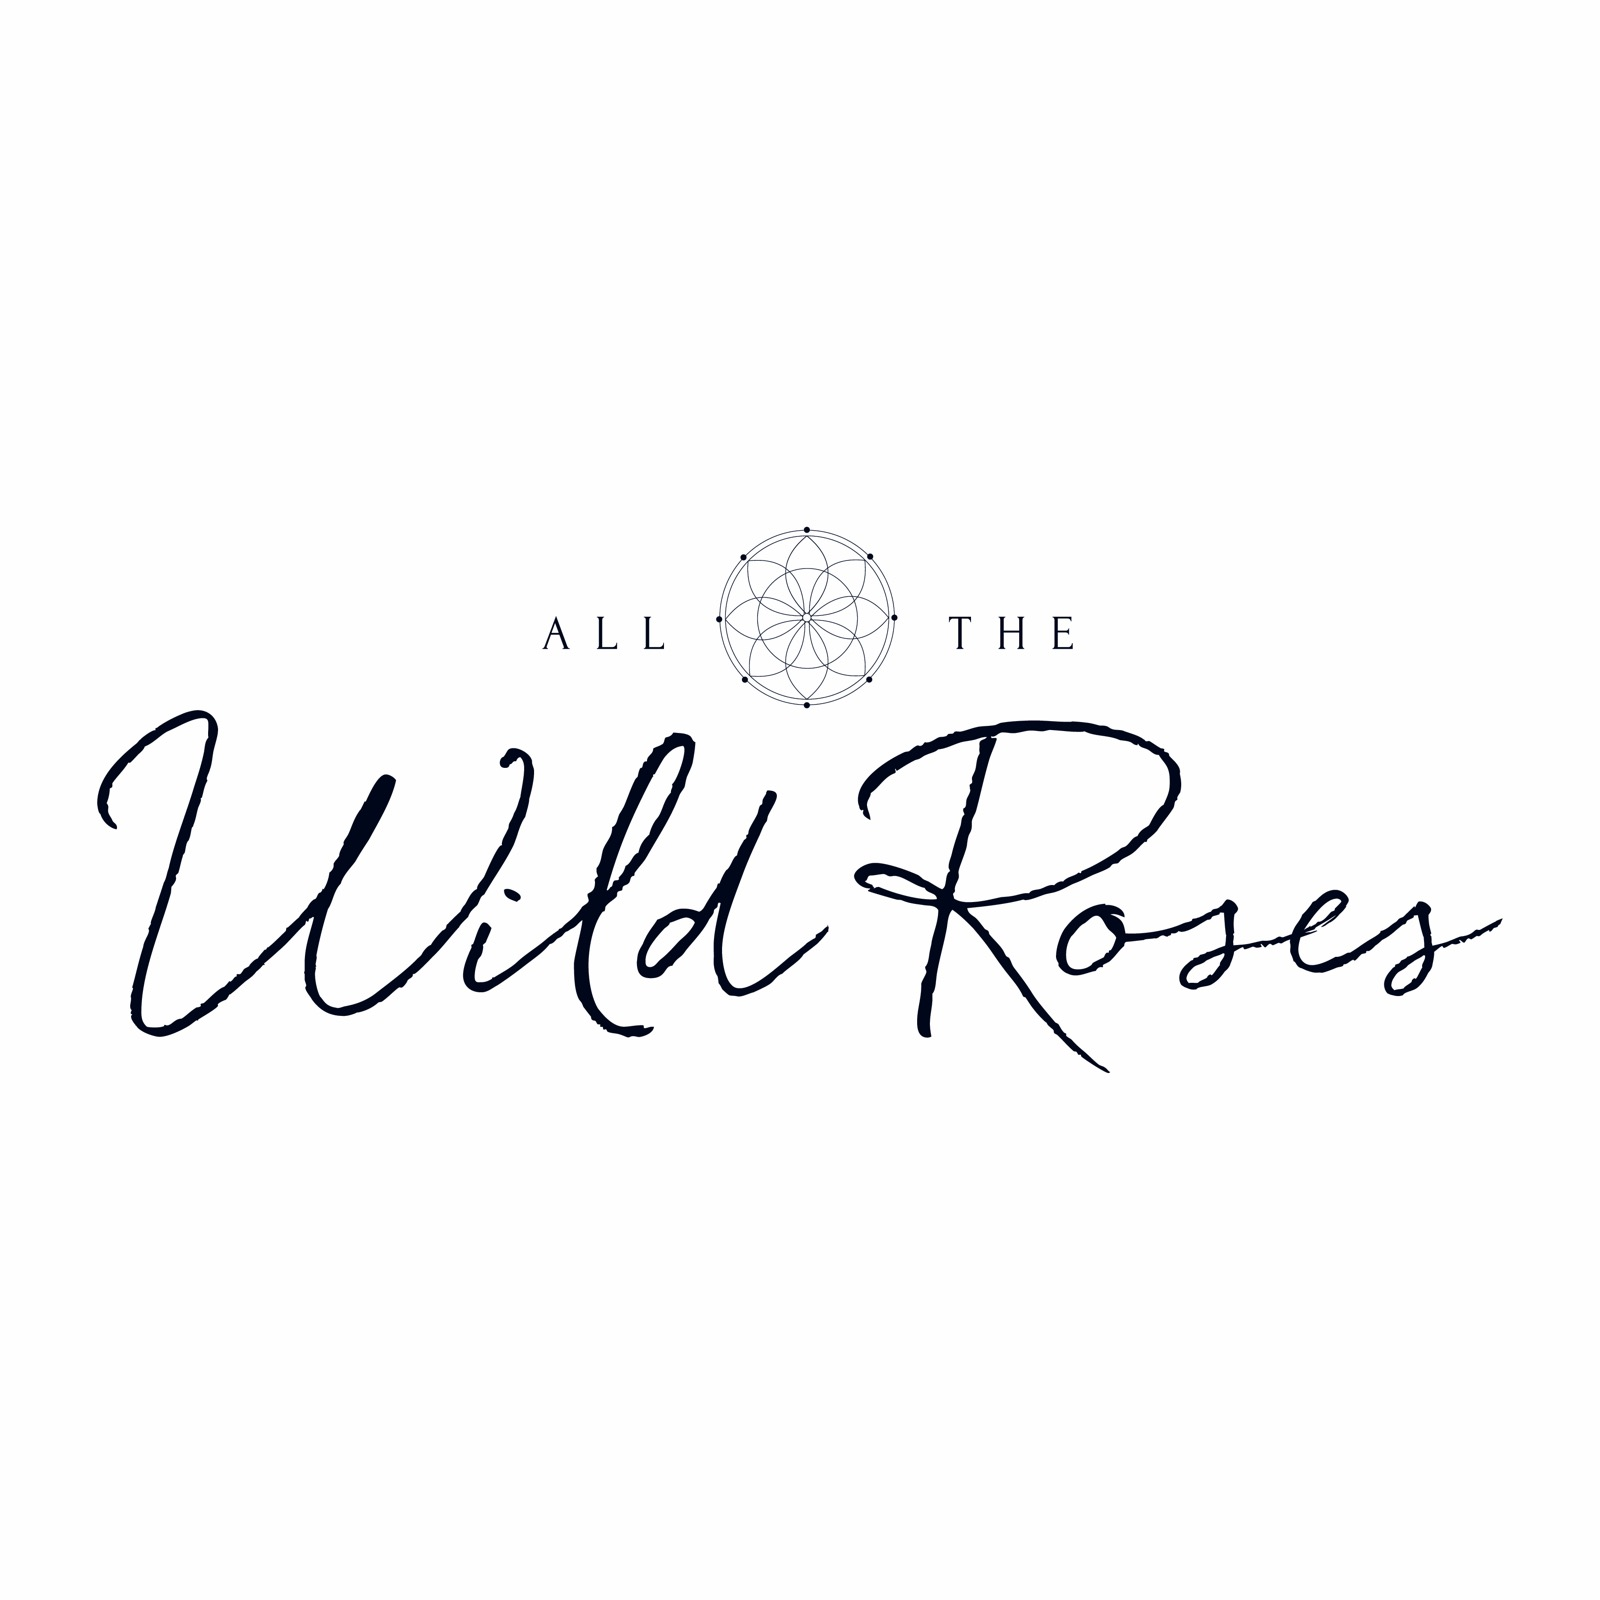 All the Wild Roses was founded with the vision of fashion as a force for change by empowering women through design and opportunity. Their timeless designs are created using deadstock/surplus fabrics and crafted by women-led micro-businesses in underserved communities. They believe fundamental to change is the empowerment of women and the connection to one another. Through their partnership with non-profit Opportunity International Australia, with every sale, they provide micro-loans to women-led businesses in developing countries to empower them to rise out of poverty.